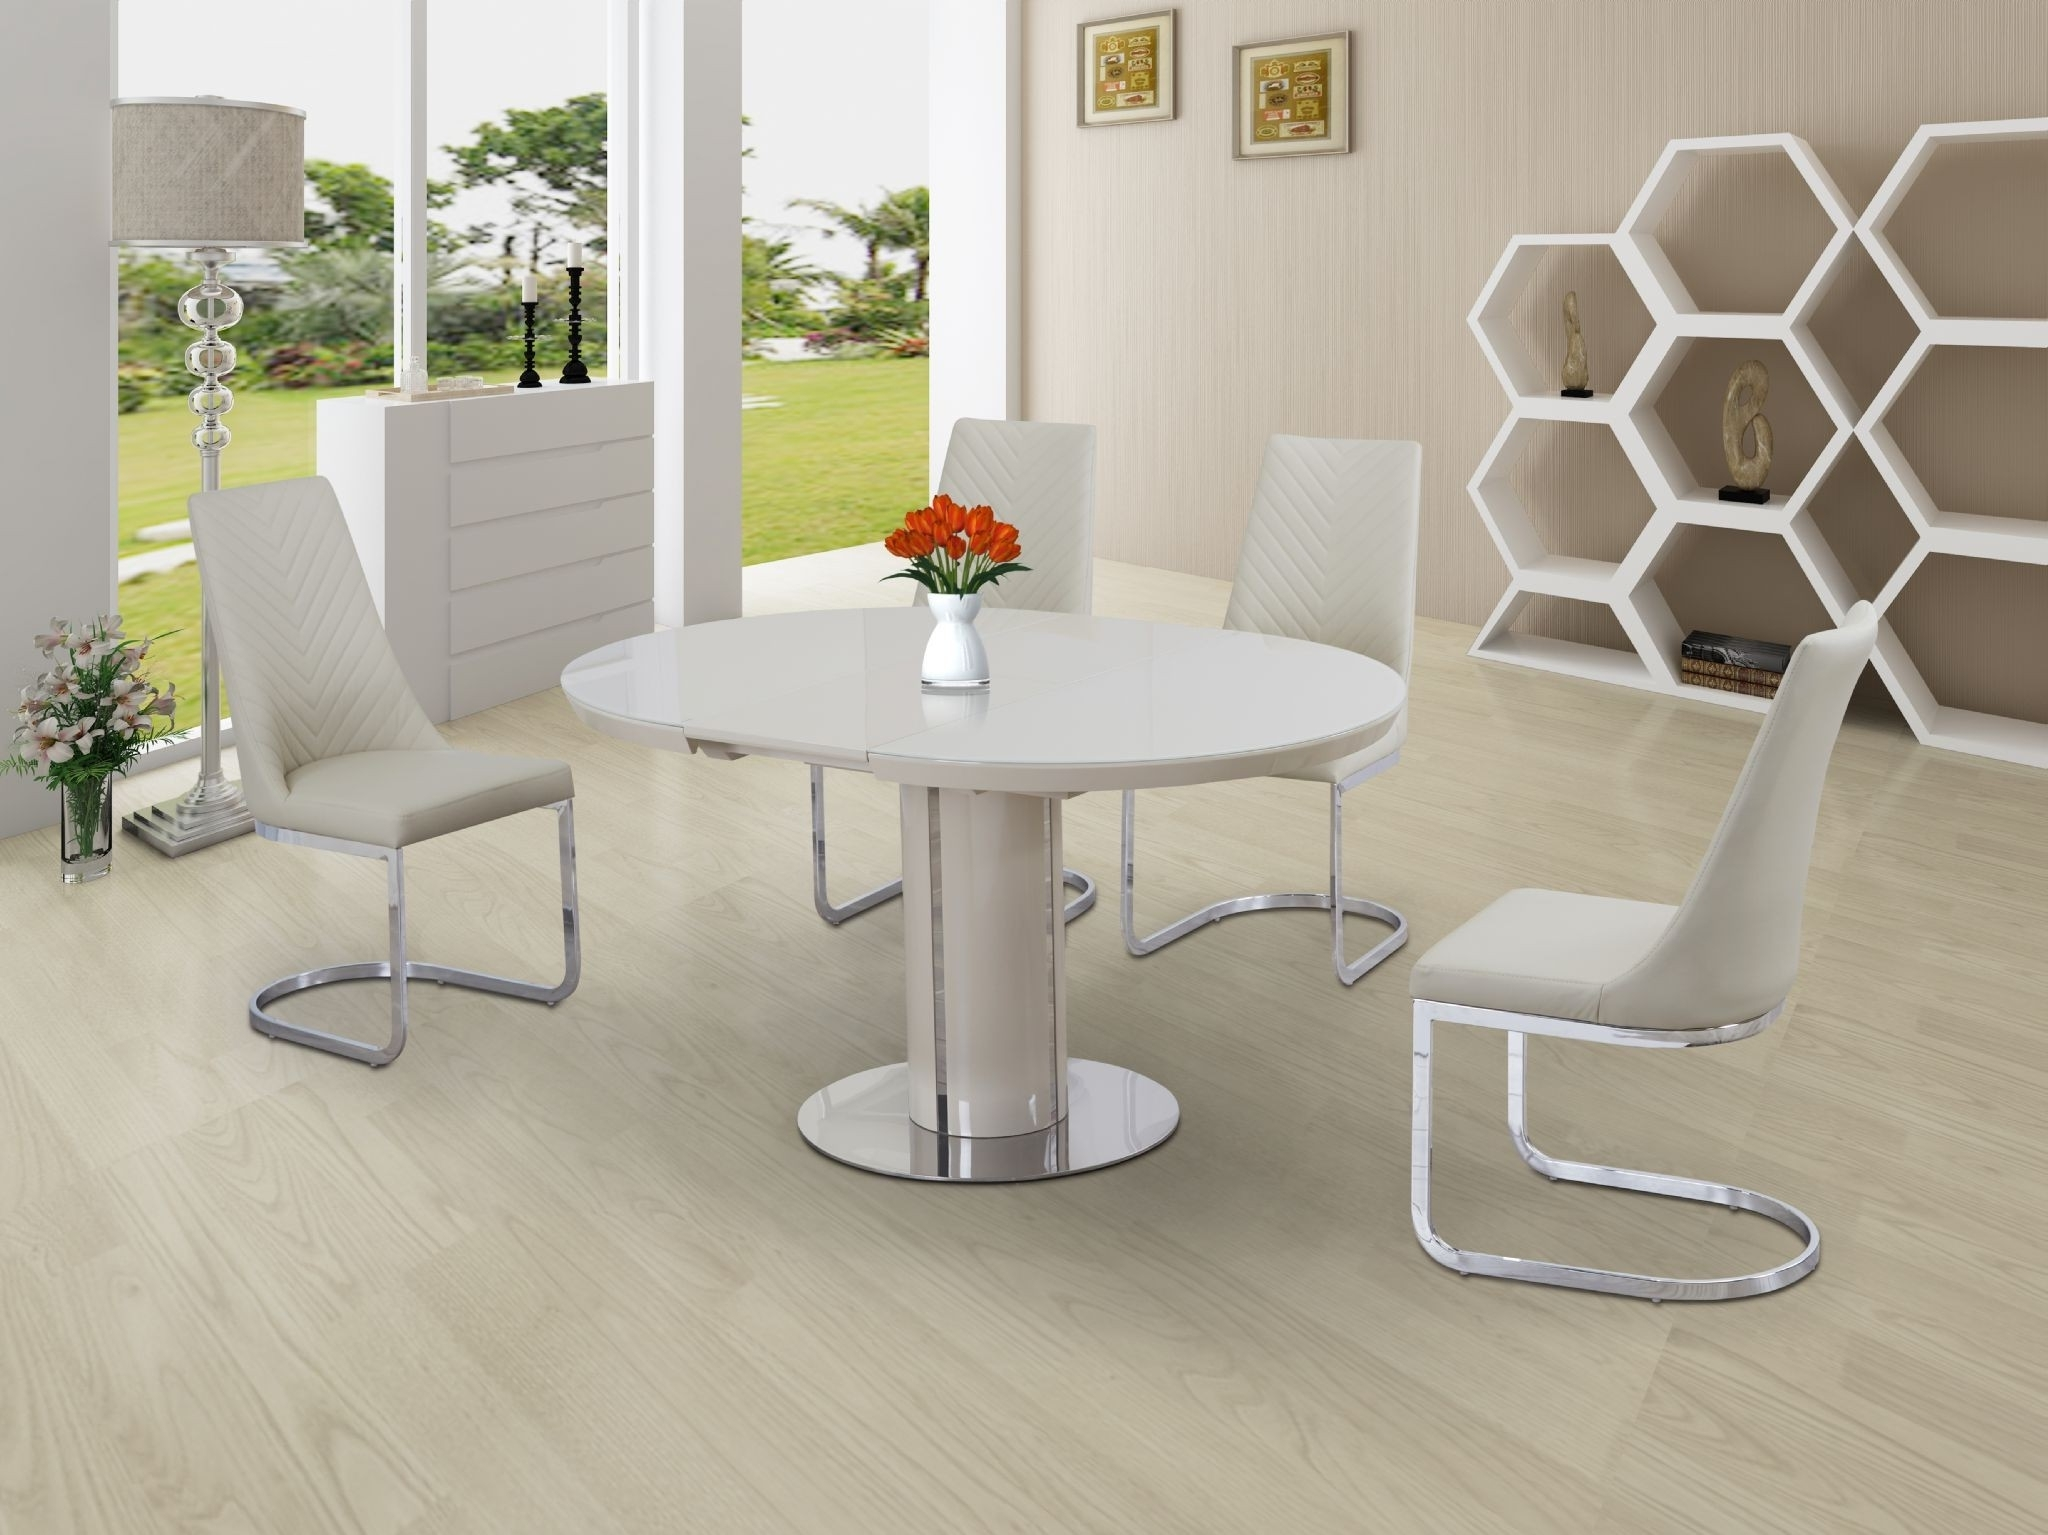 High Gloss Dining Tables And Chairs Inside Popular Buy Annular Cream High Gloss Extending Dining Table (View 11 of 25)